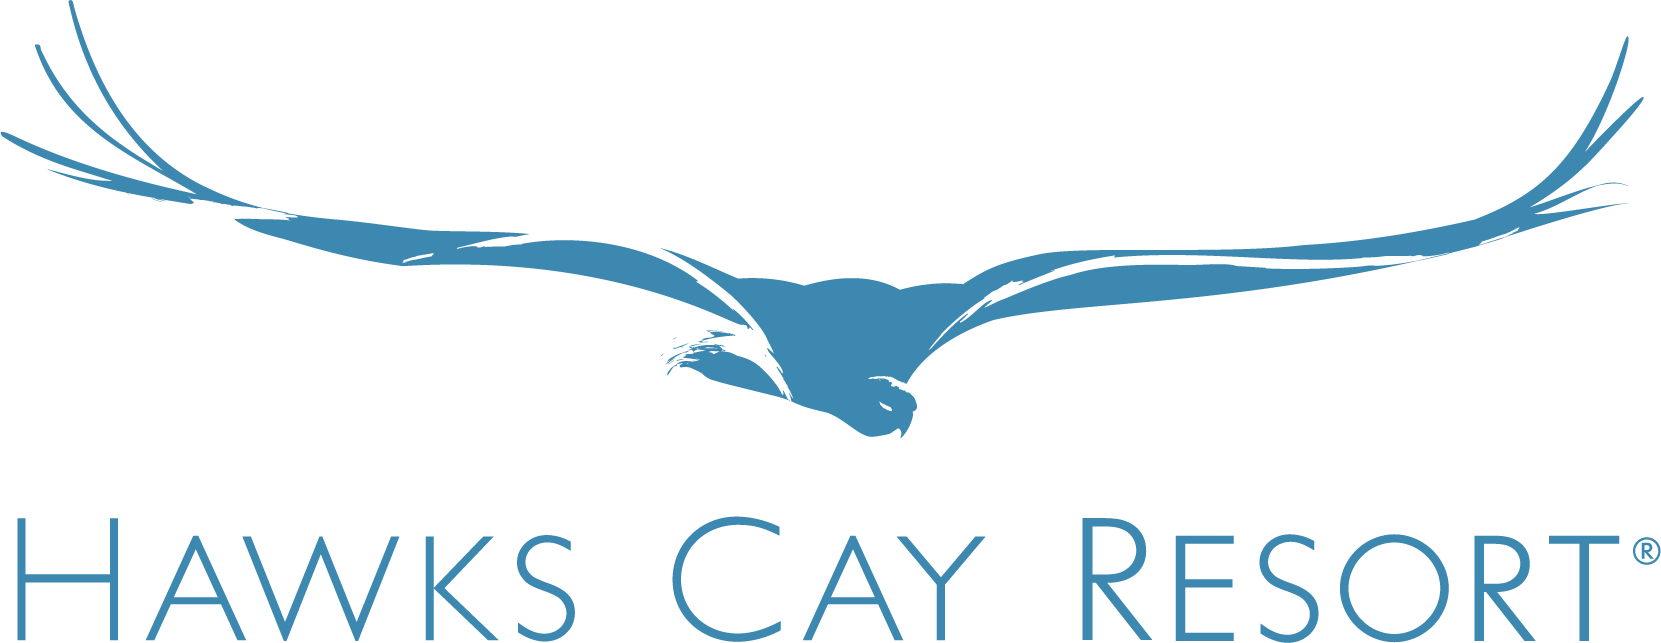 hawks-cay-resort-title-sponsor-of-saltwater-experience-inshore-fishing-show.png